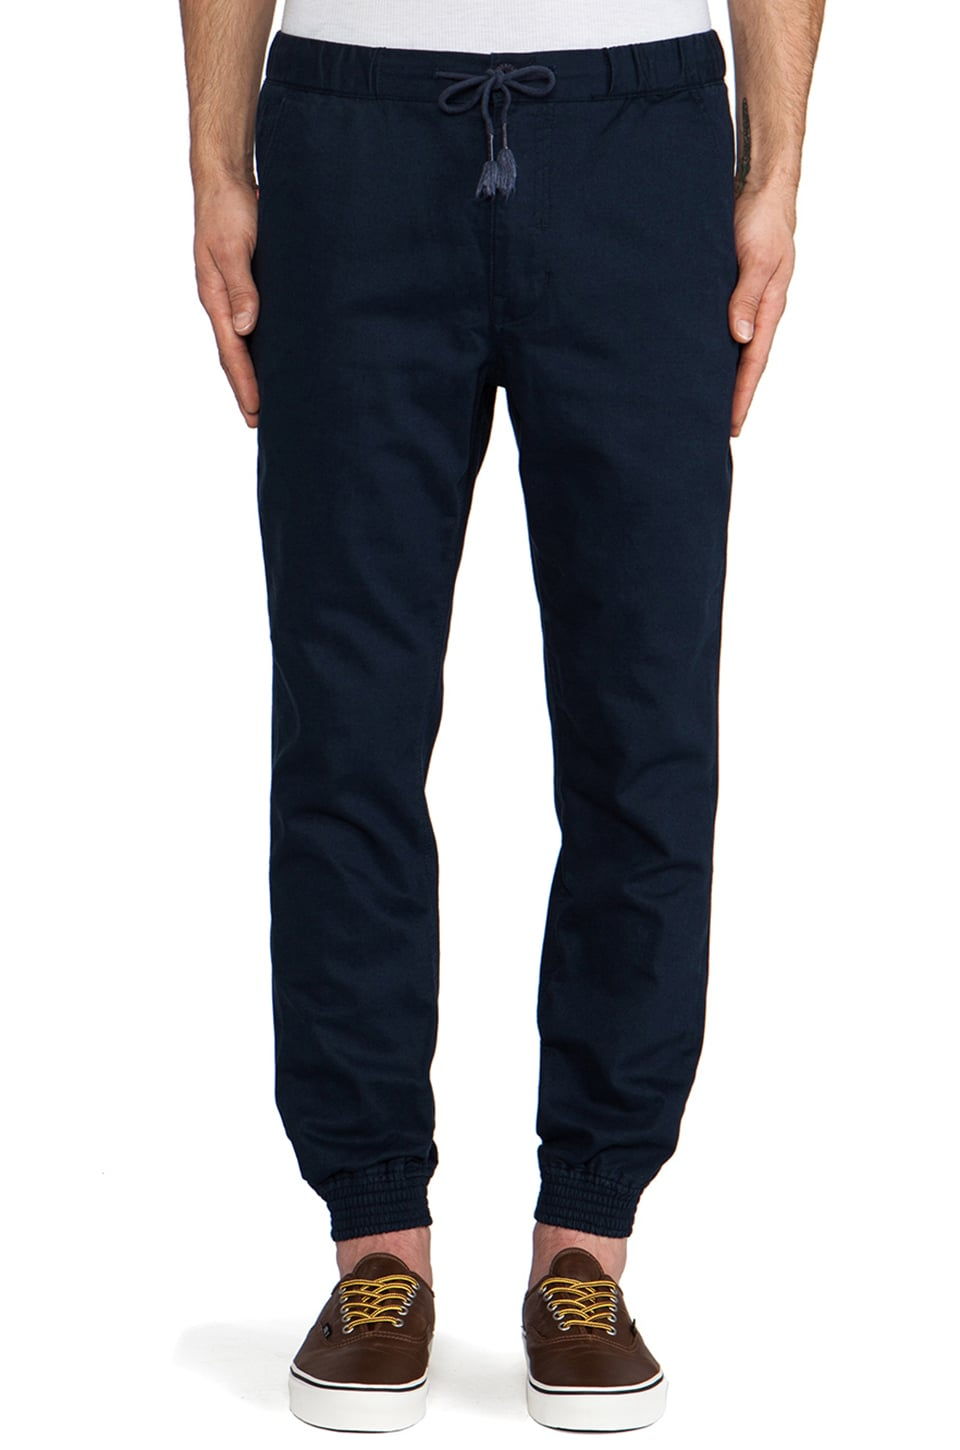 Staple Vito Cuff Pant in Navy